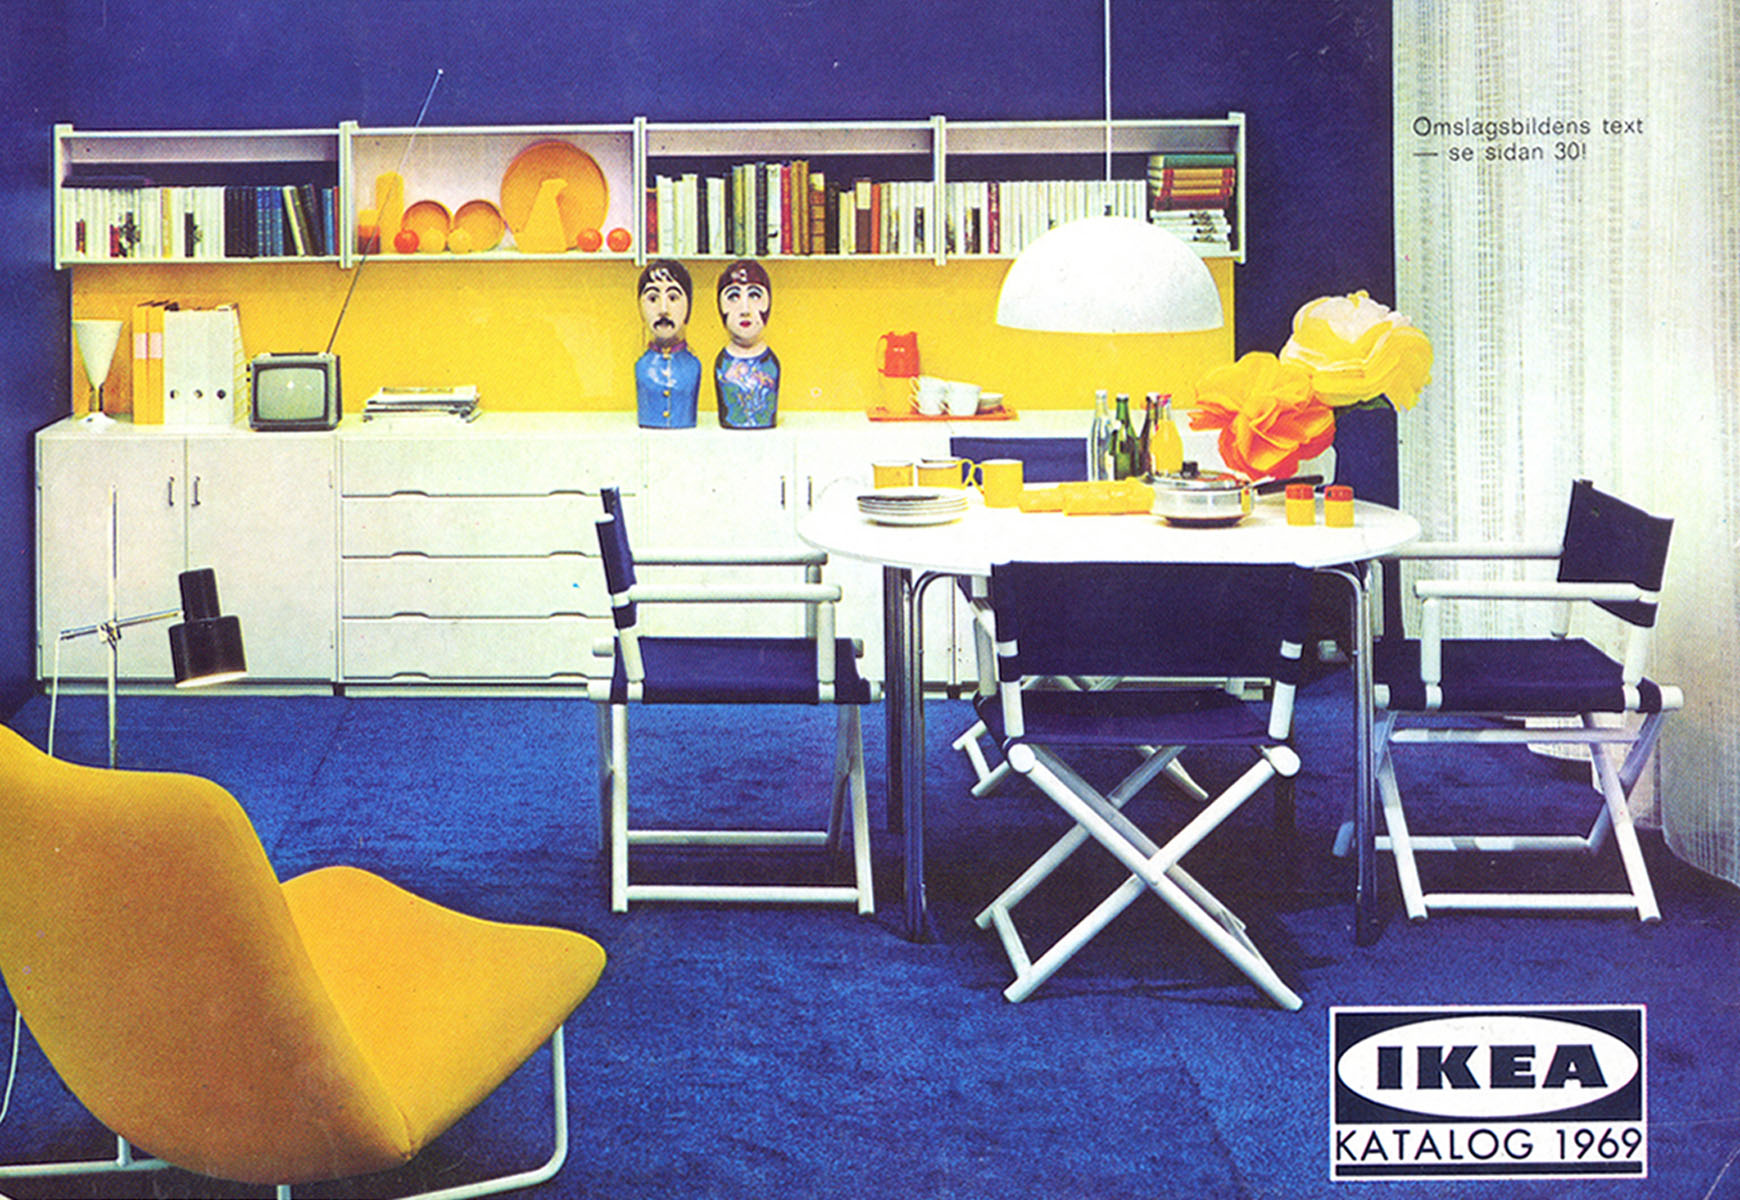 IKEA Catalog Covers From 1951-2018